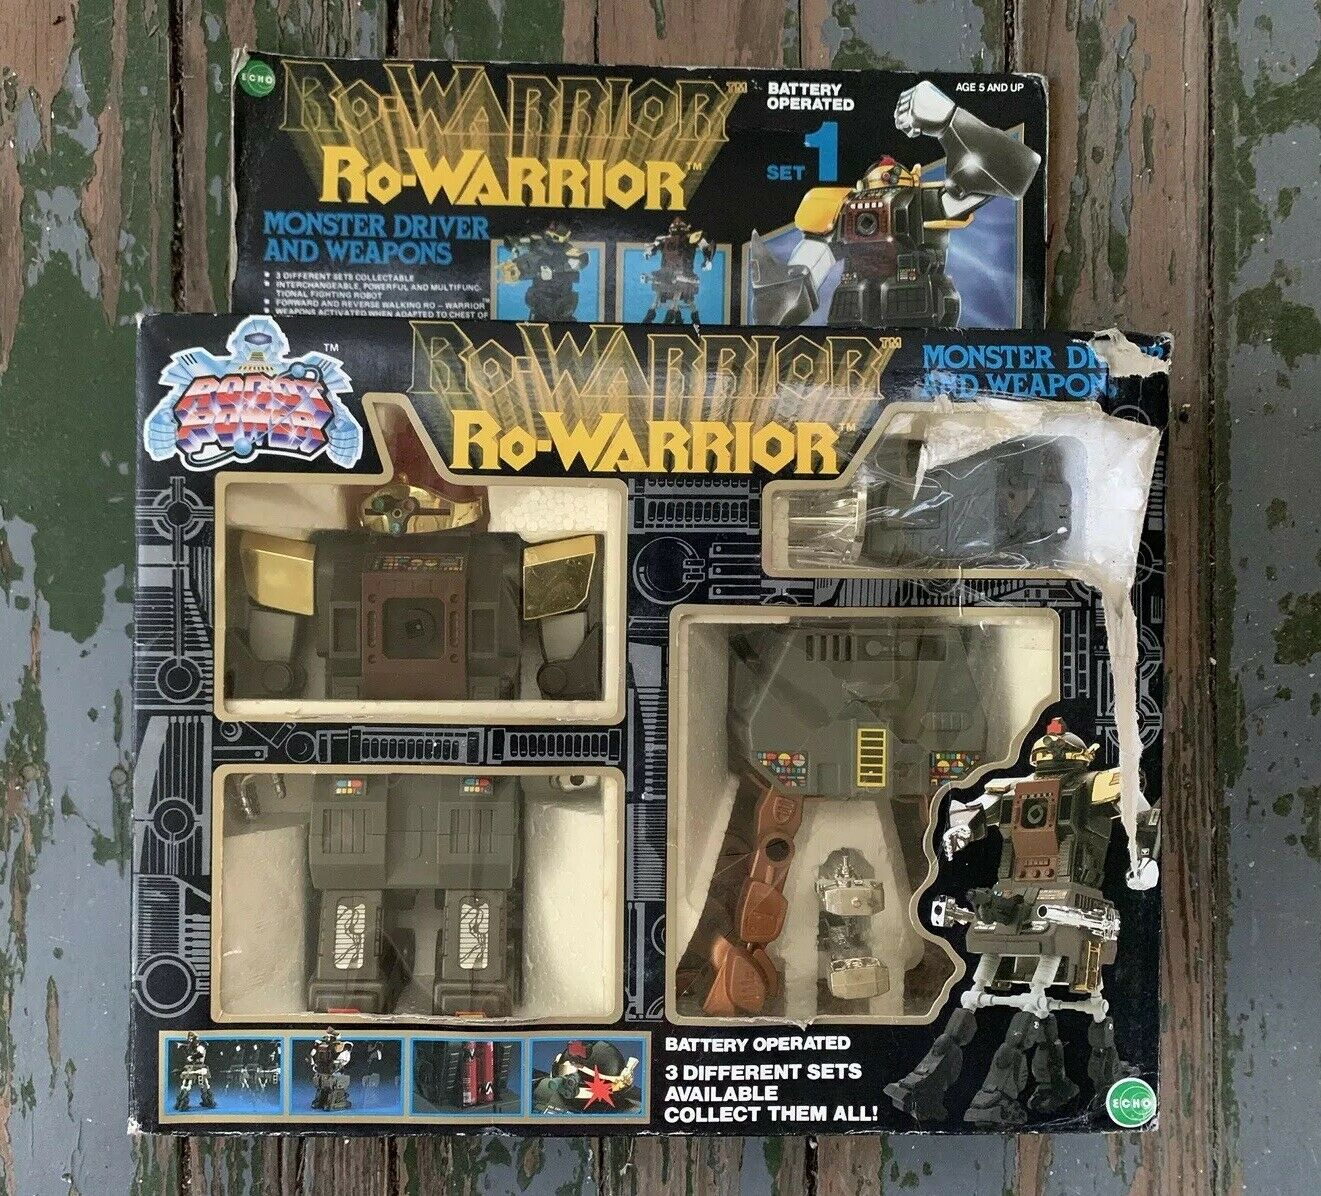 Vintage Echo Ro-Warrior Set 2 Robot Grand Commander With Weapons & Instructions